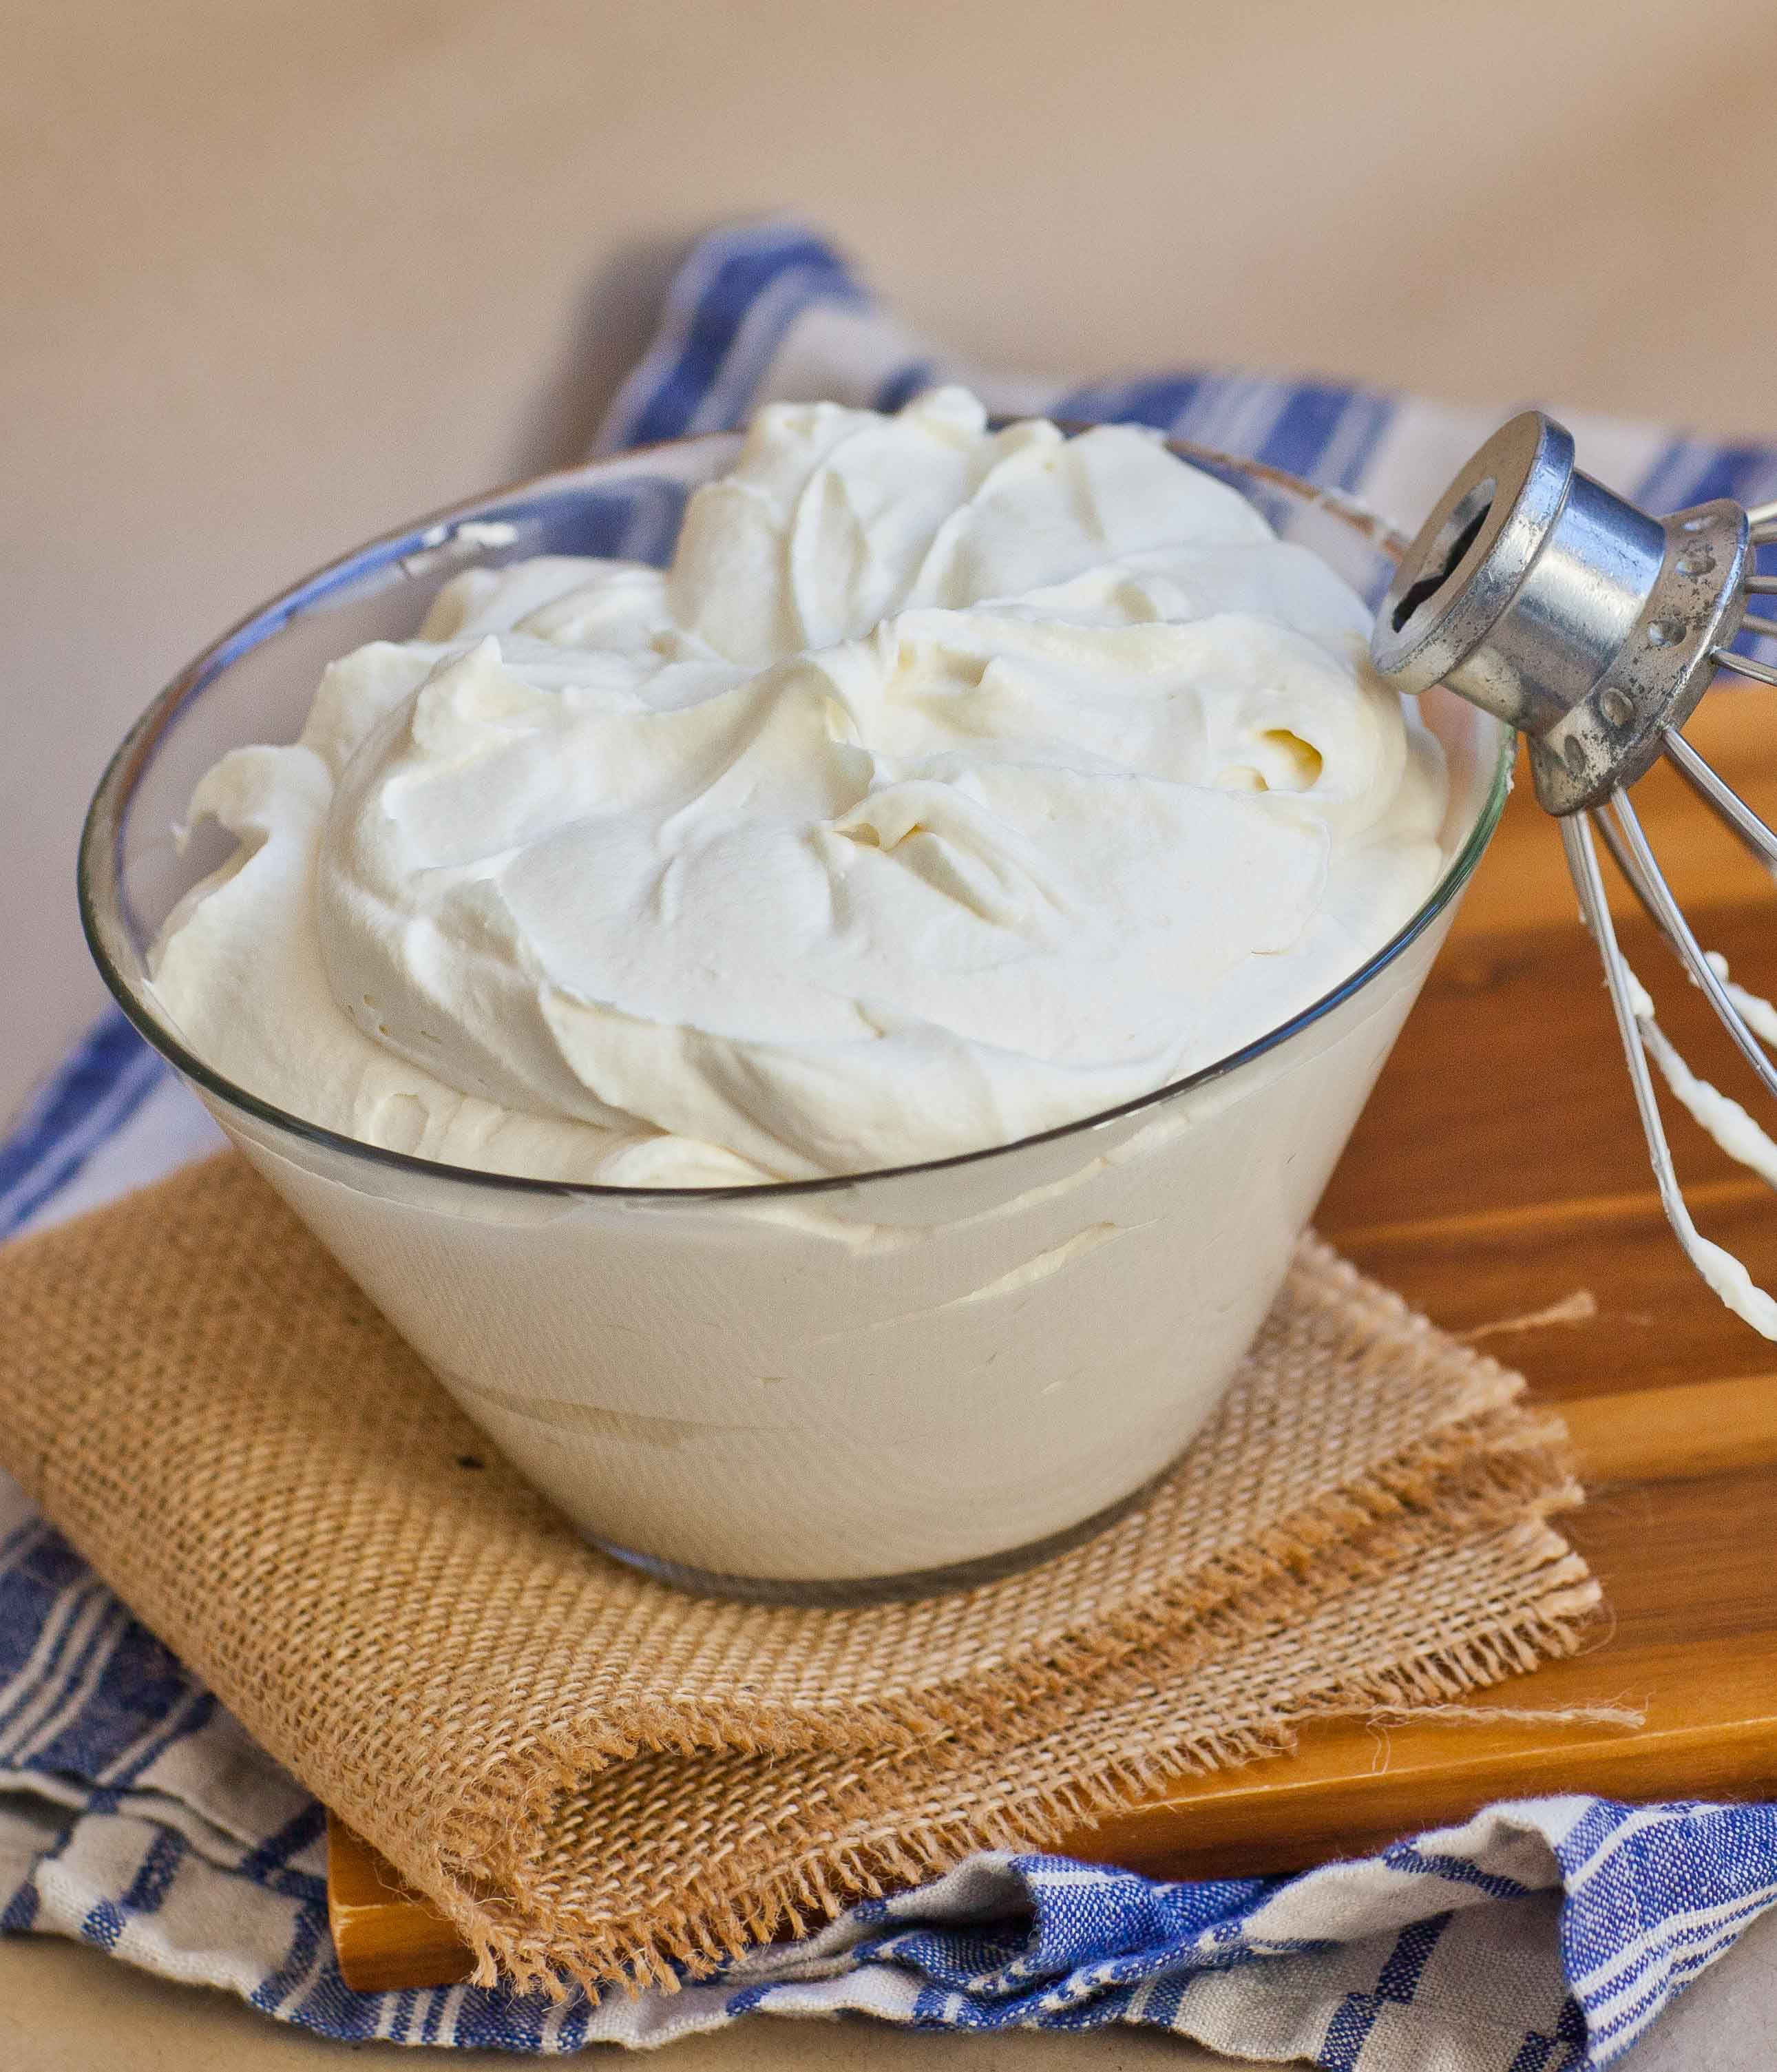 Whipped Cream Frosting Video Recipe Whipped Cream Frosting Cream Frosting Frosting Recipes